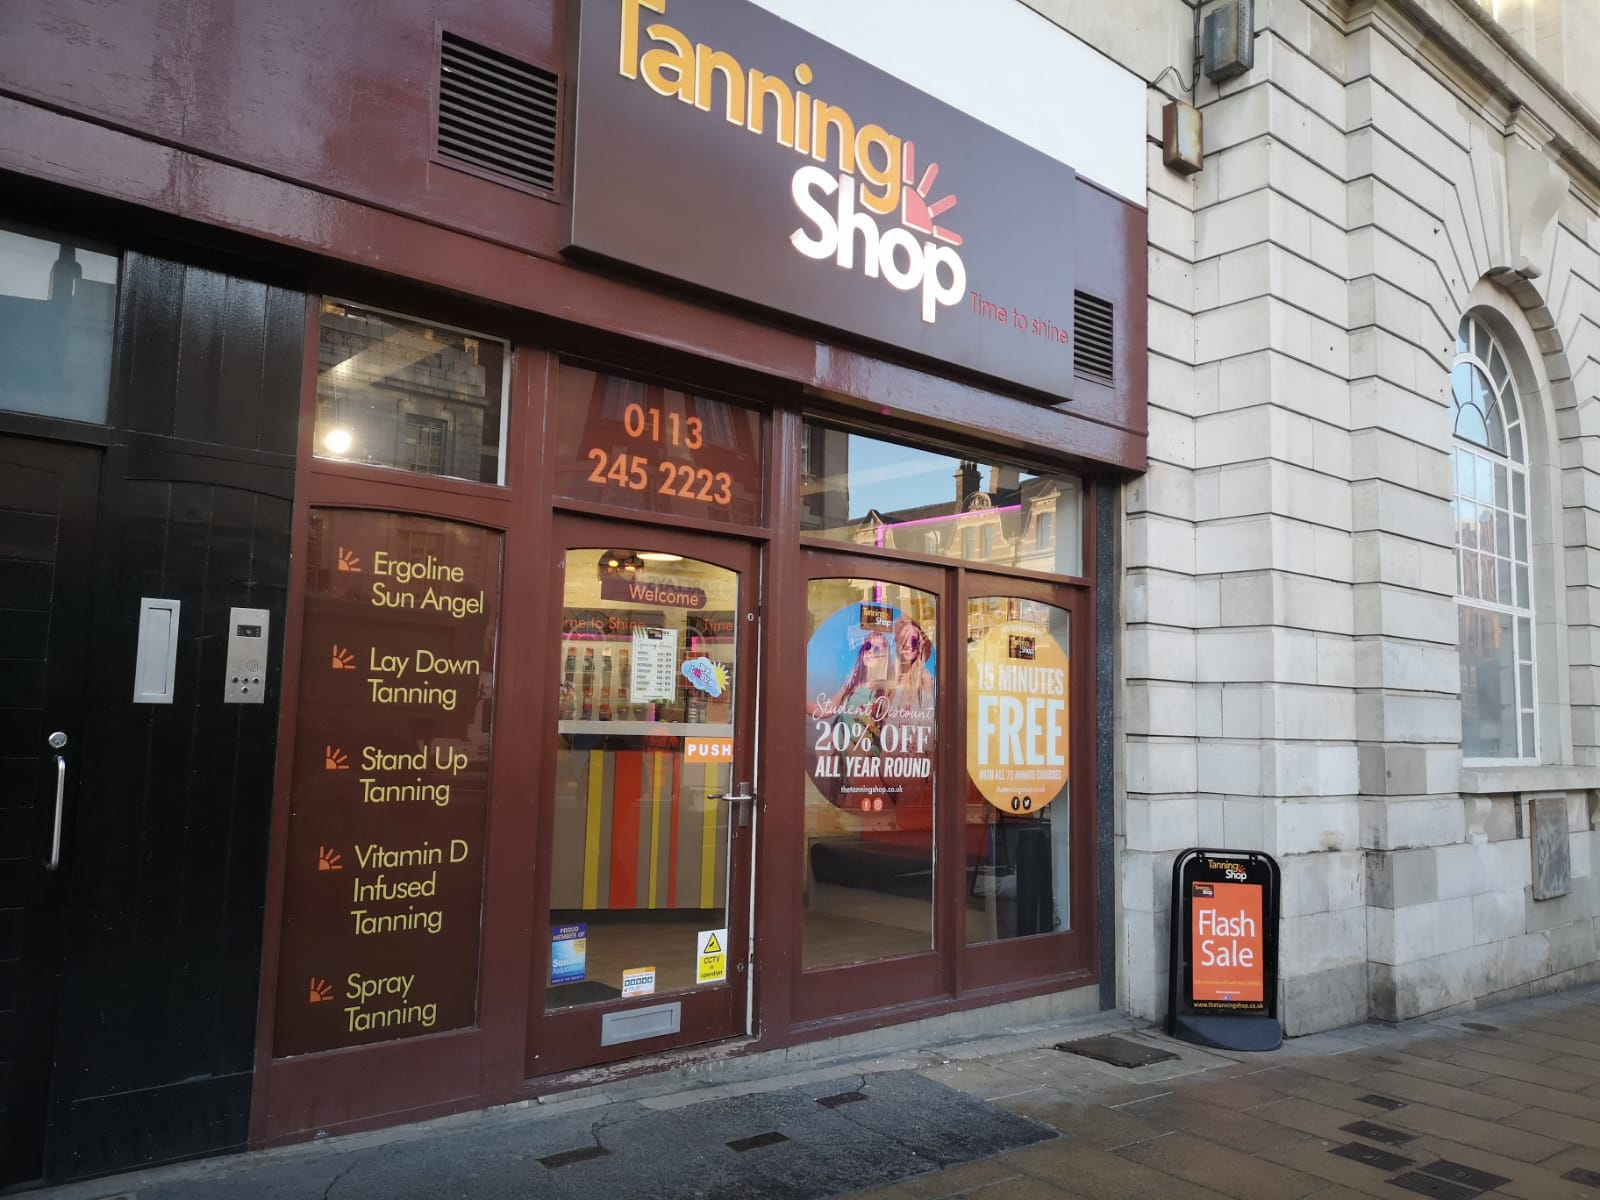 The Tanning Shop, Leeds Central